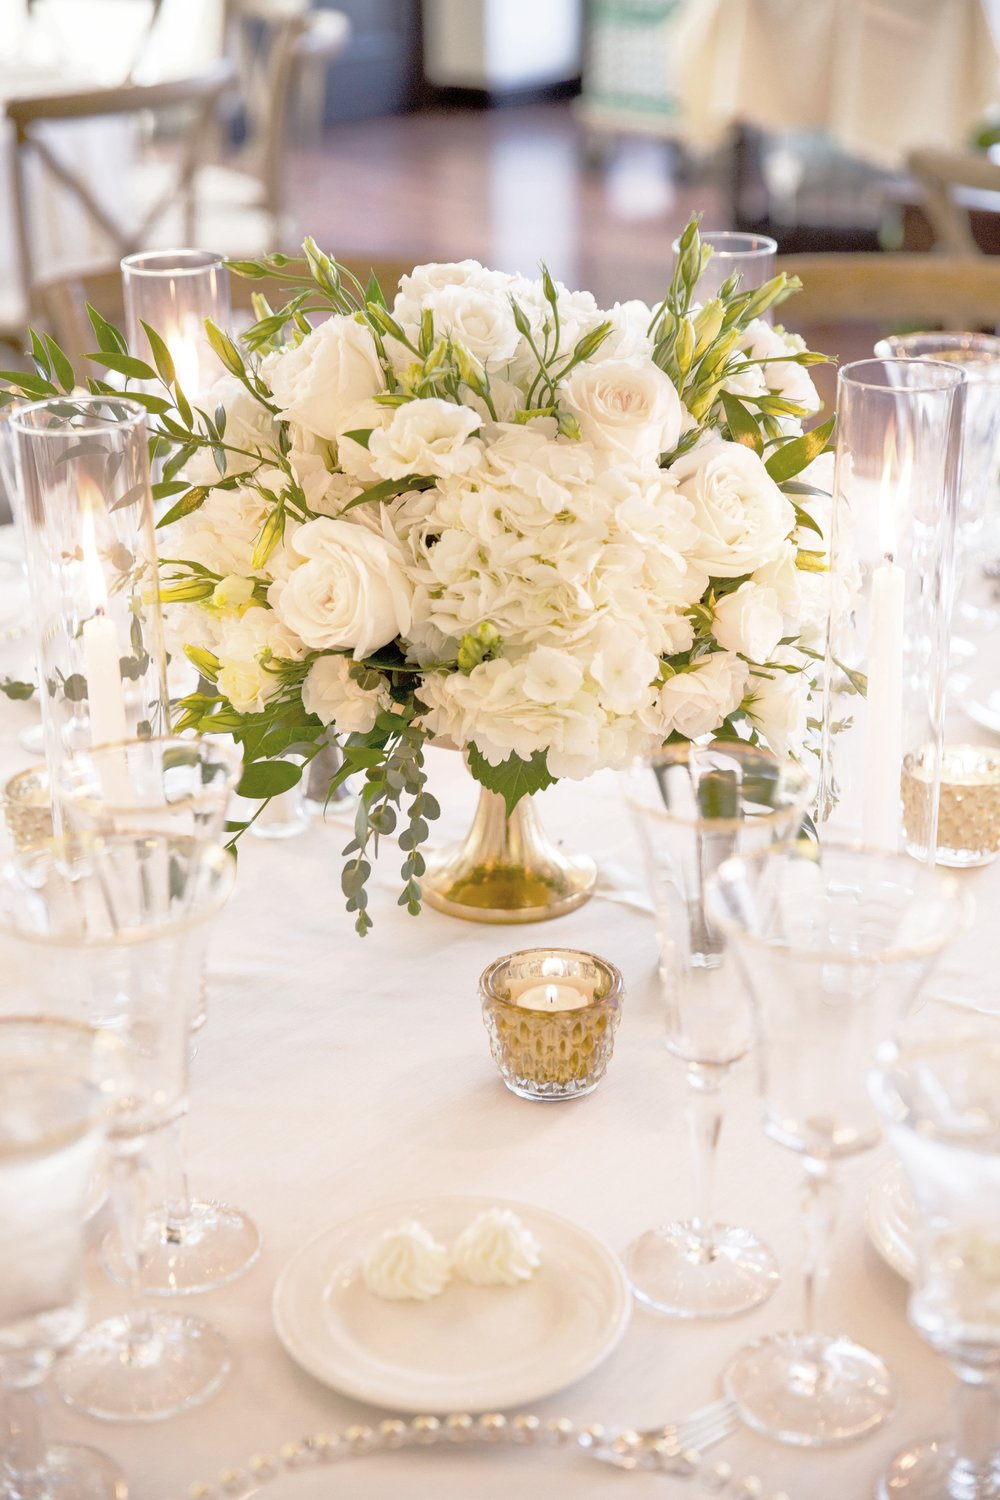 Petite White and Green Wedding Centerpiece  |  Luxury Destination Wedding Planning and Event Design by  Andrea Eppolito Events  · Photos by  Stephen Salazar  · Flowers by Naakiti Flora.